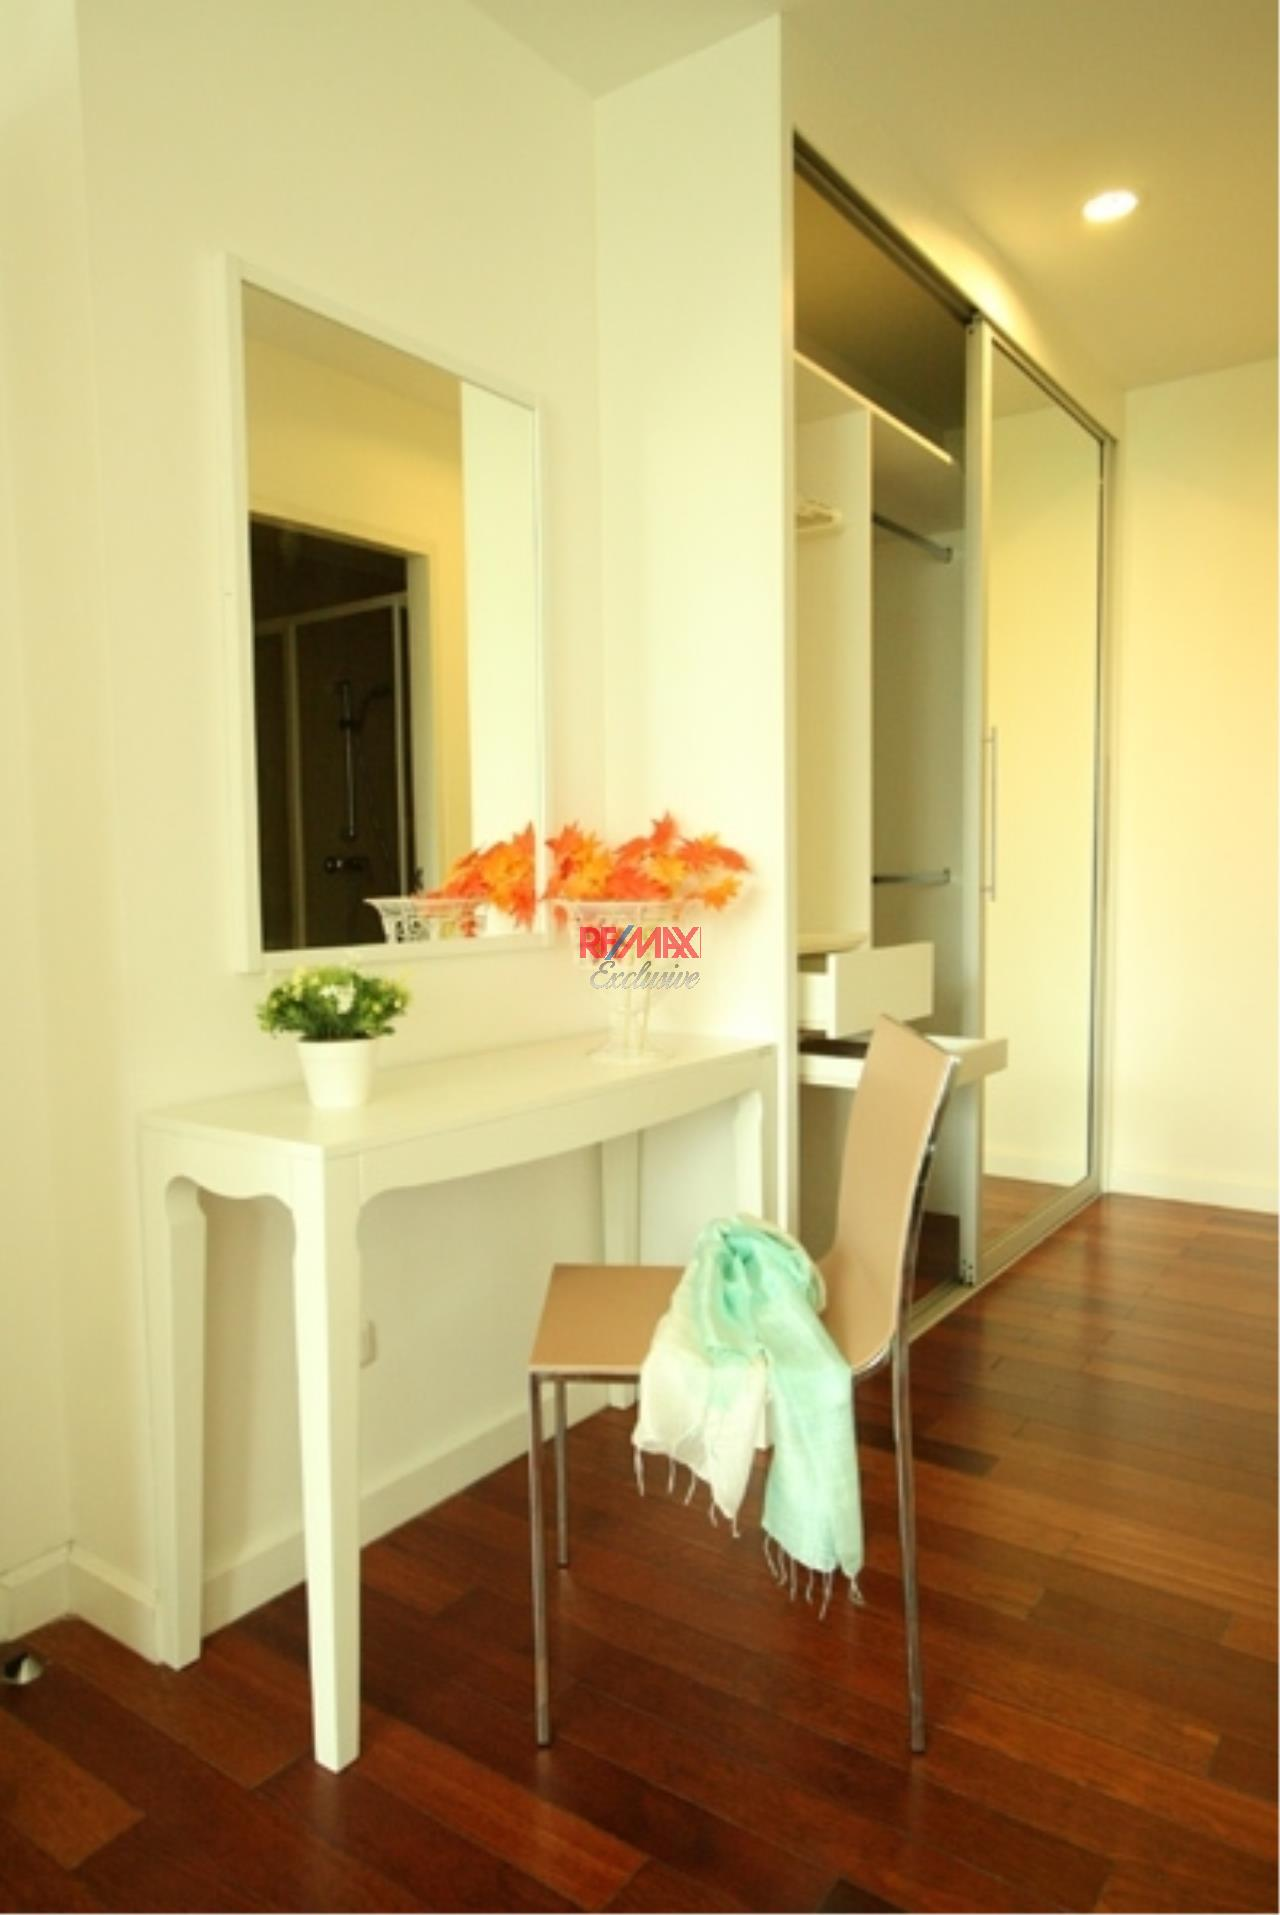 RE/MAX Exclusive Agency's 49 Plus 2 Condo 2 Bedrooms 81 Sqm For Sale 8,800,000 THB 4